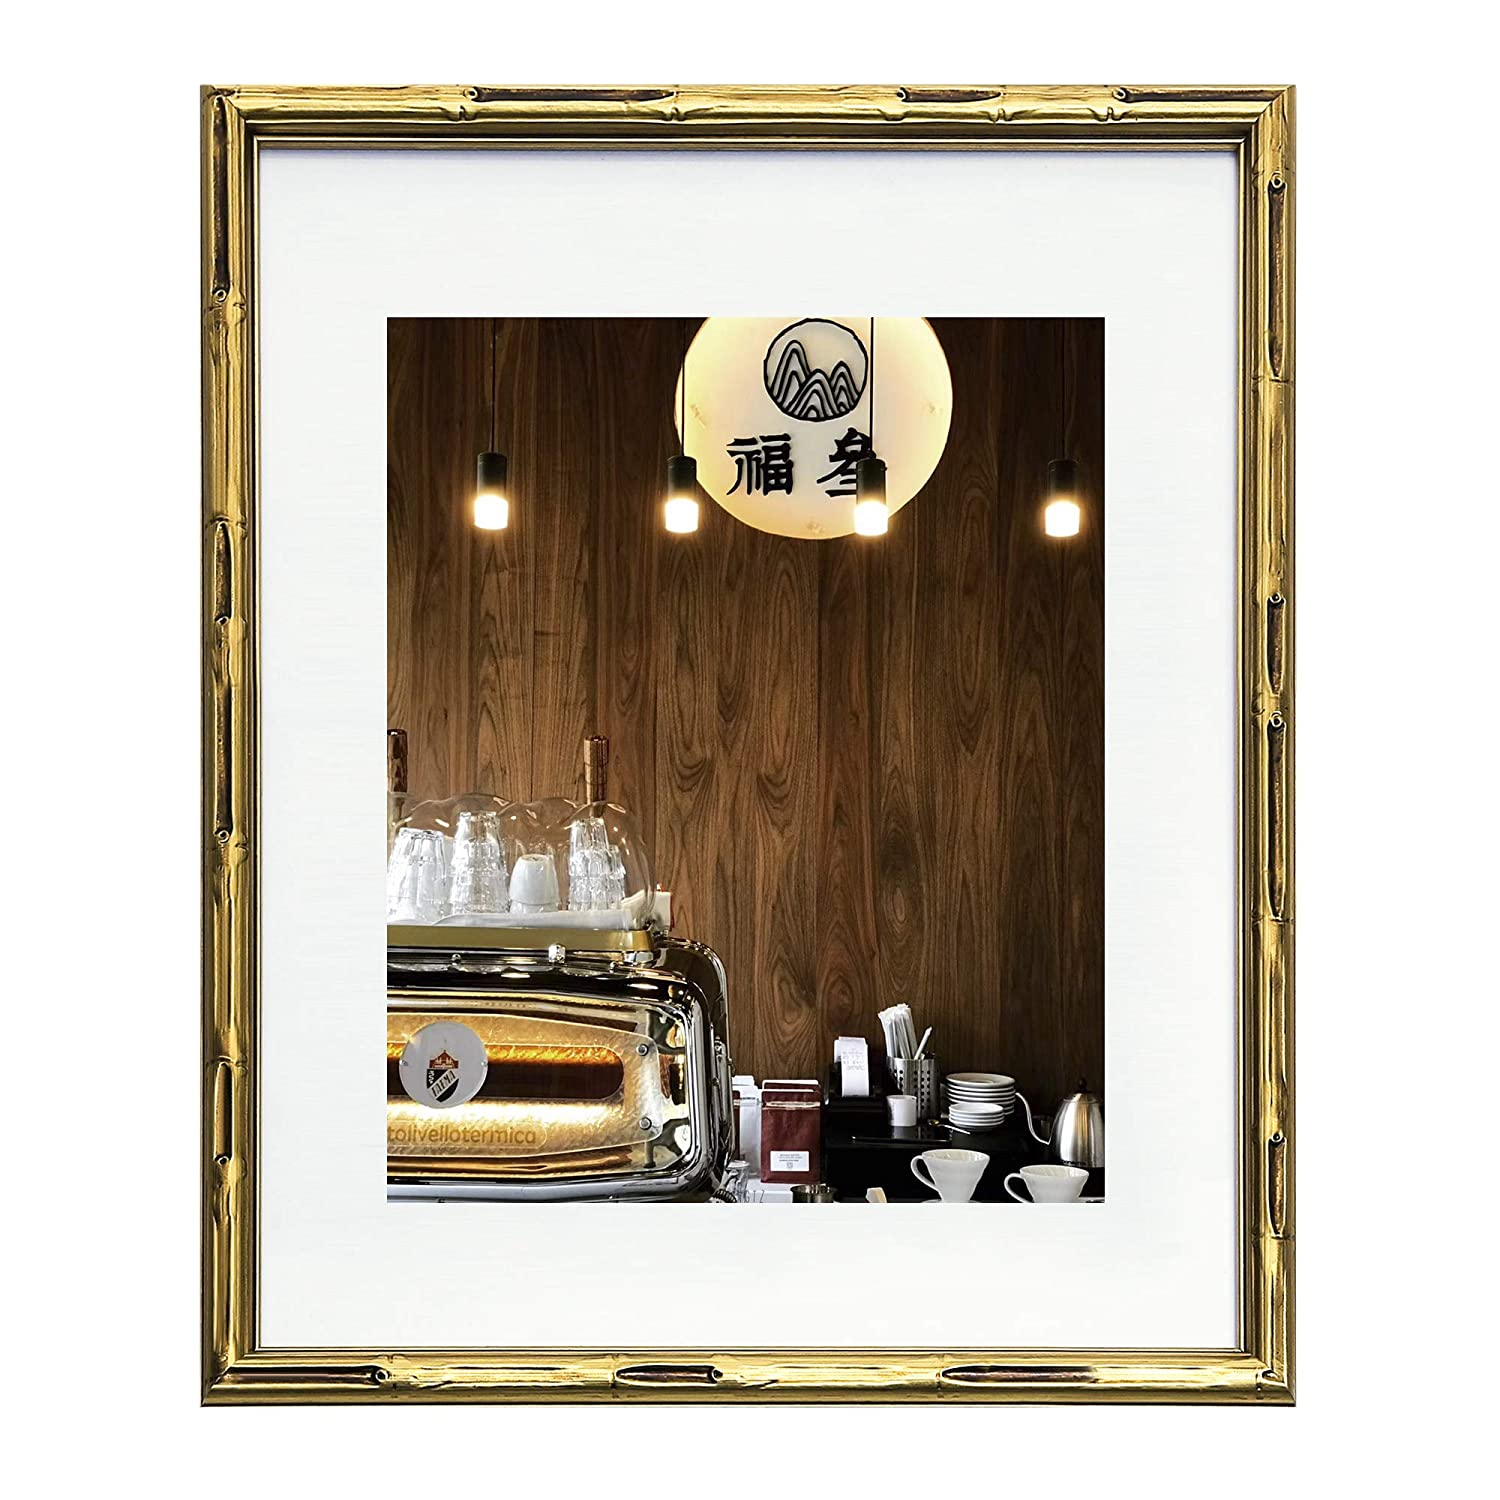 Amazoncom Flagship Frames 11x14 Frame Bamboo Modelling Made For